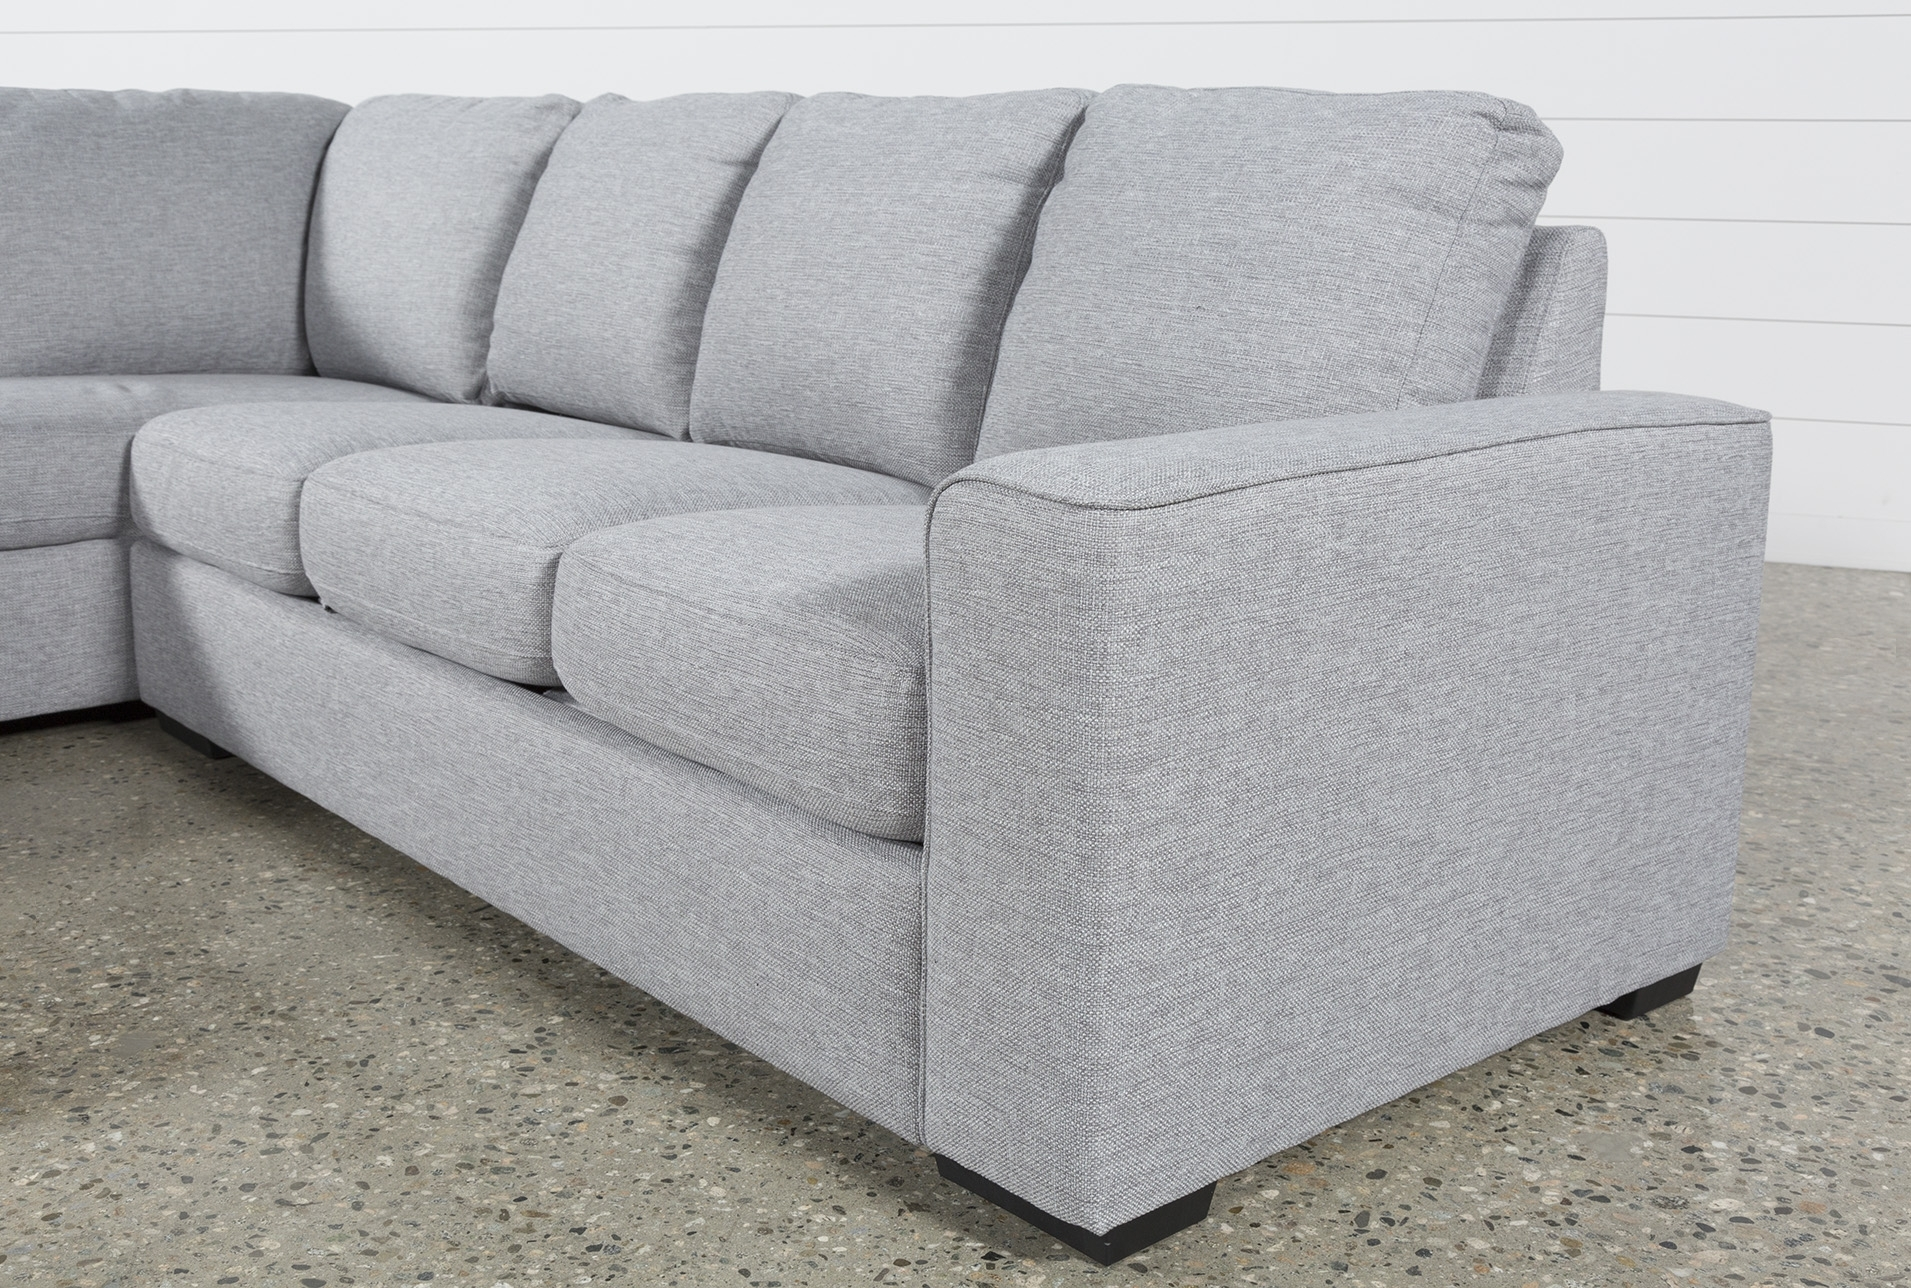 Lucy Grey 2 Piece Sectional W/laf Chaise | Products Throughout Lucy Grey 2 Piece Sectionals With Raf Chaise (View 5 of 25)